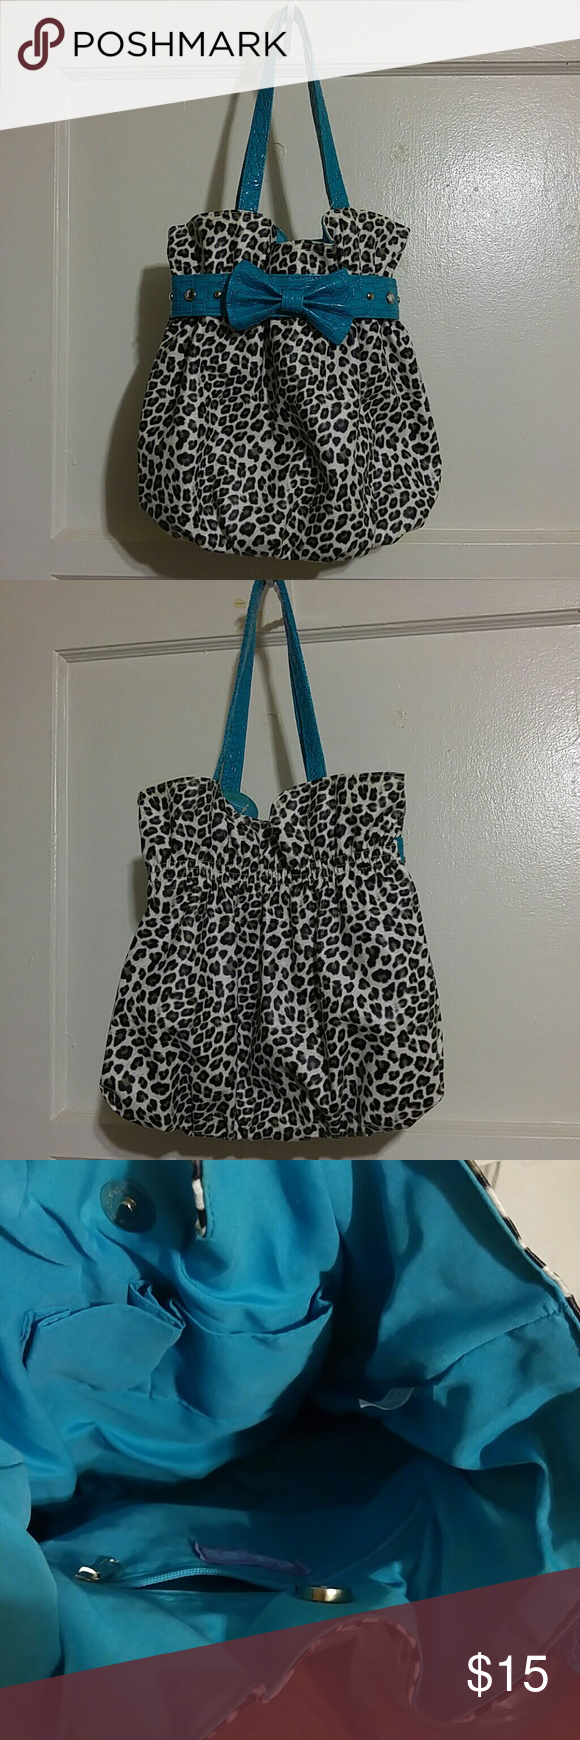 CUTE Leopard Black n White Purse Black n white leopard cinched purse with a turquoise bow and trim. Also has 2 diamond studs and 2 silver studs. In excellent condition. Claire's Bags Shoulder Bags